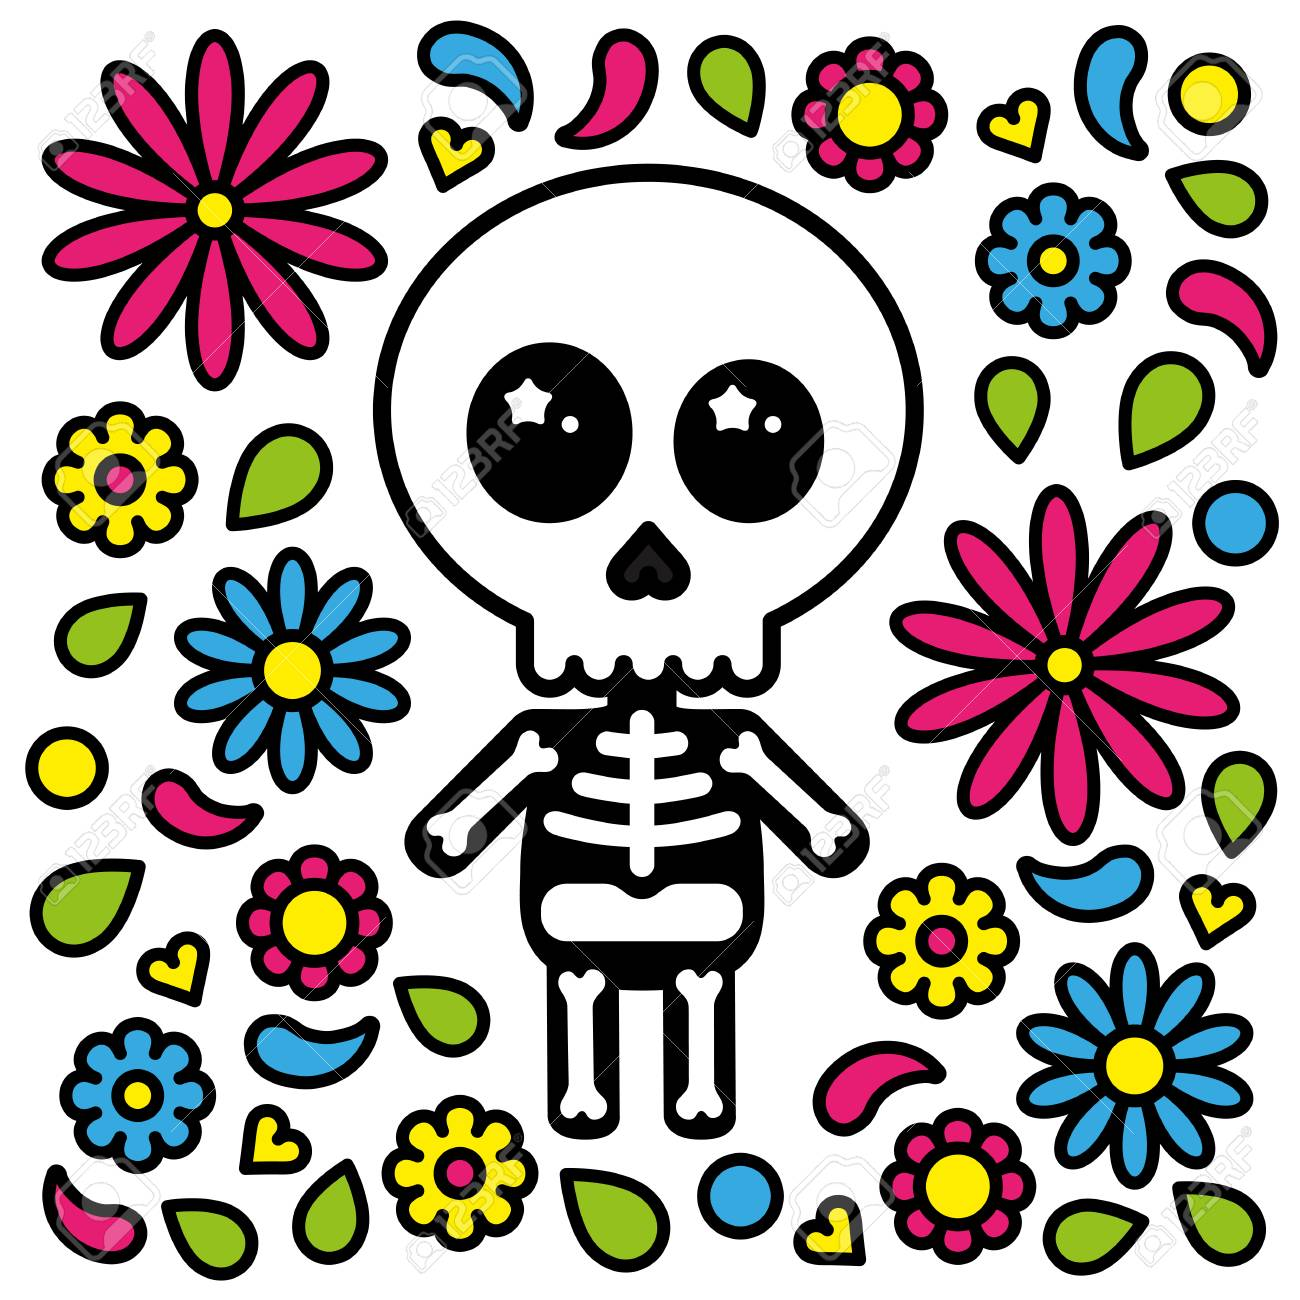 Cute skeleton character day of the dead flowers background.